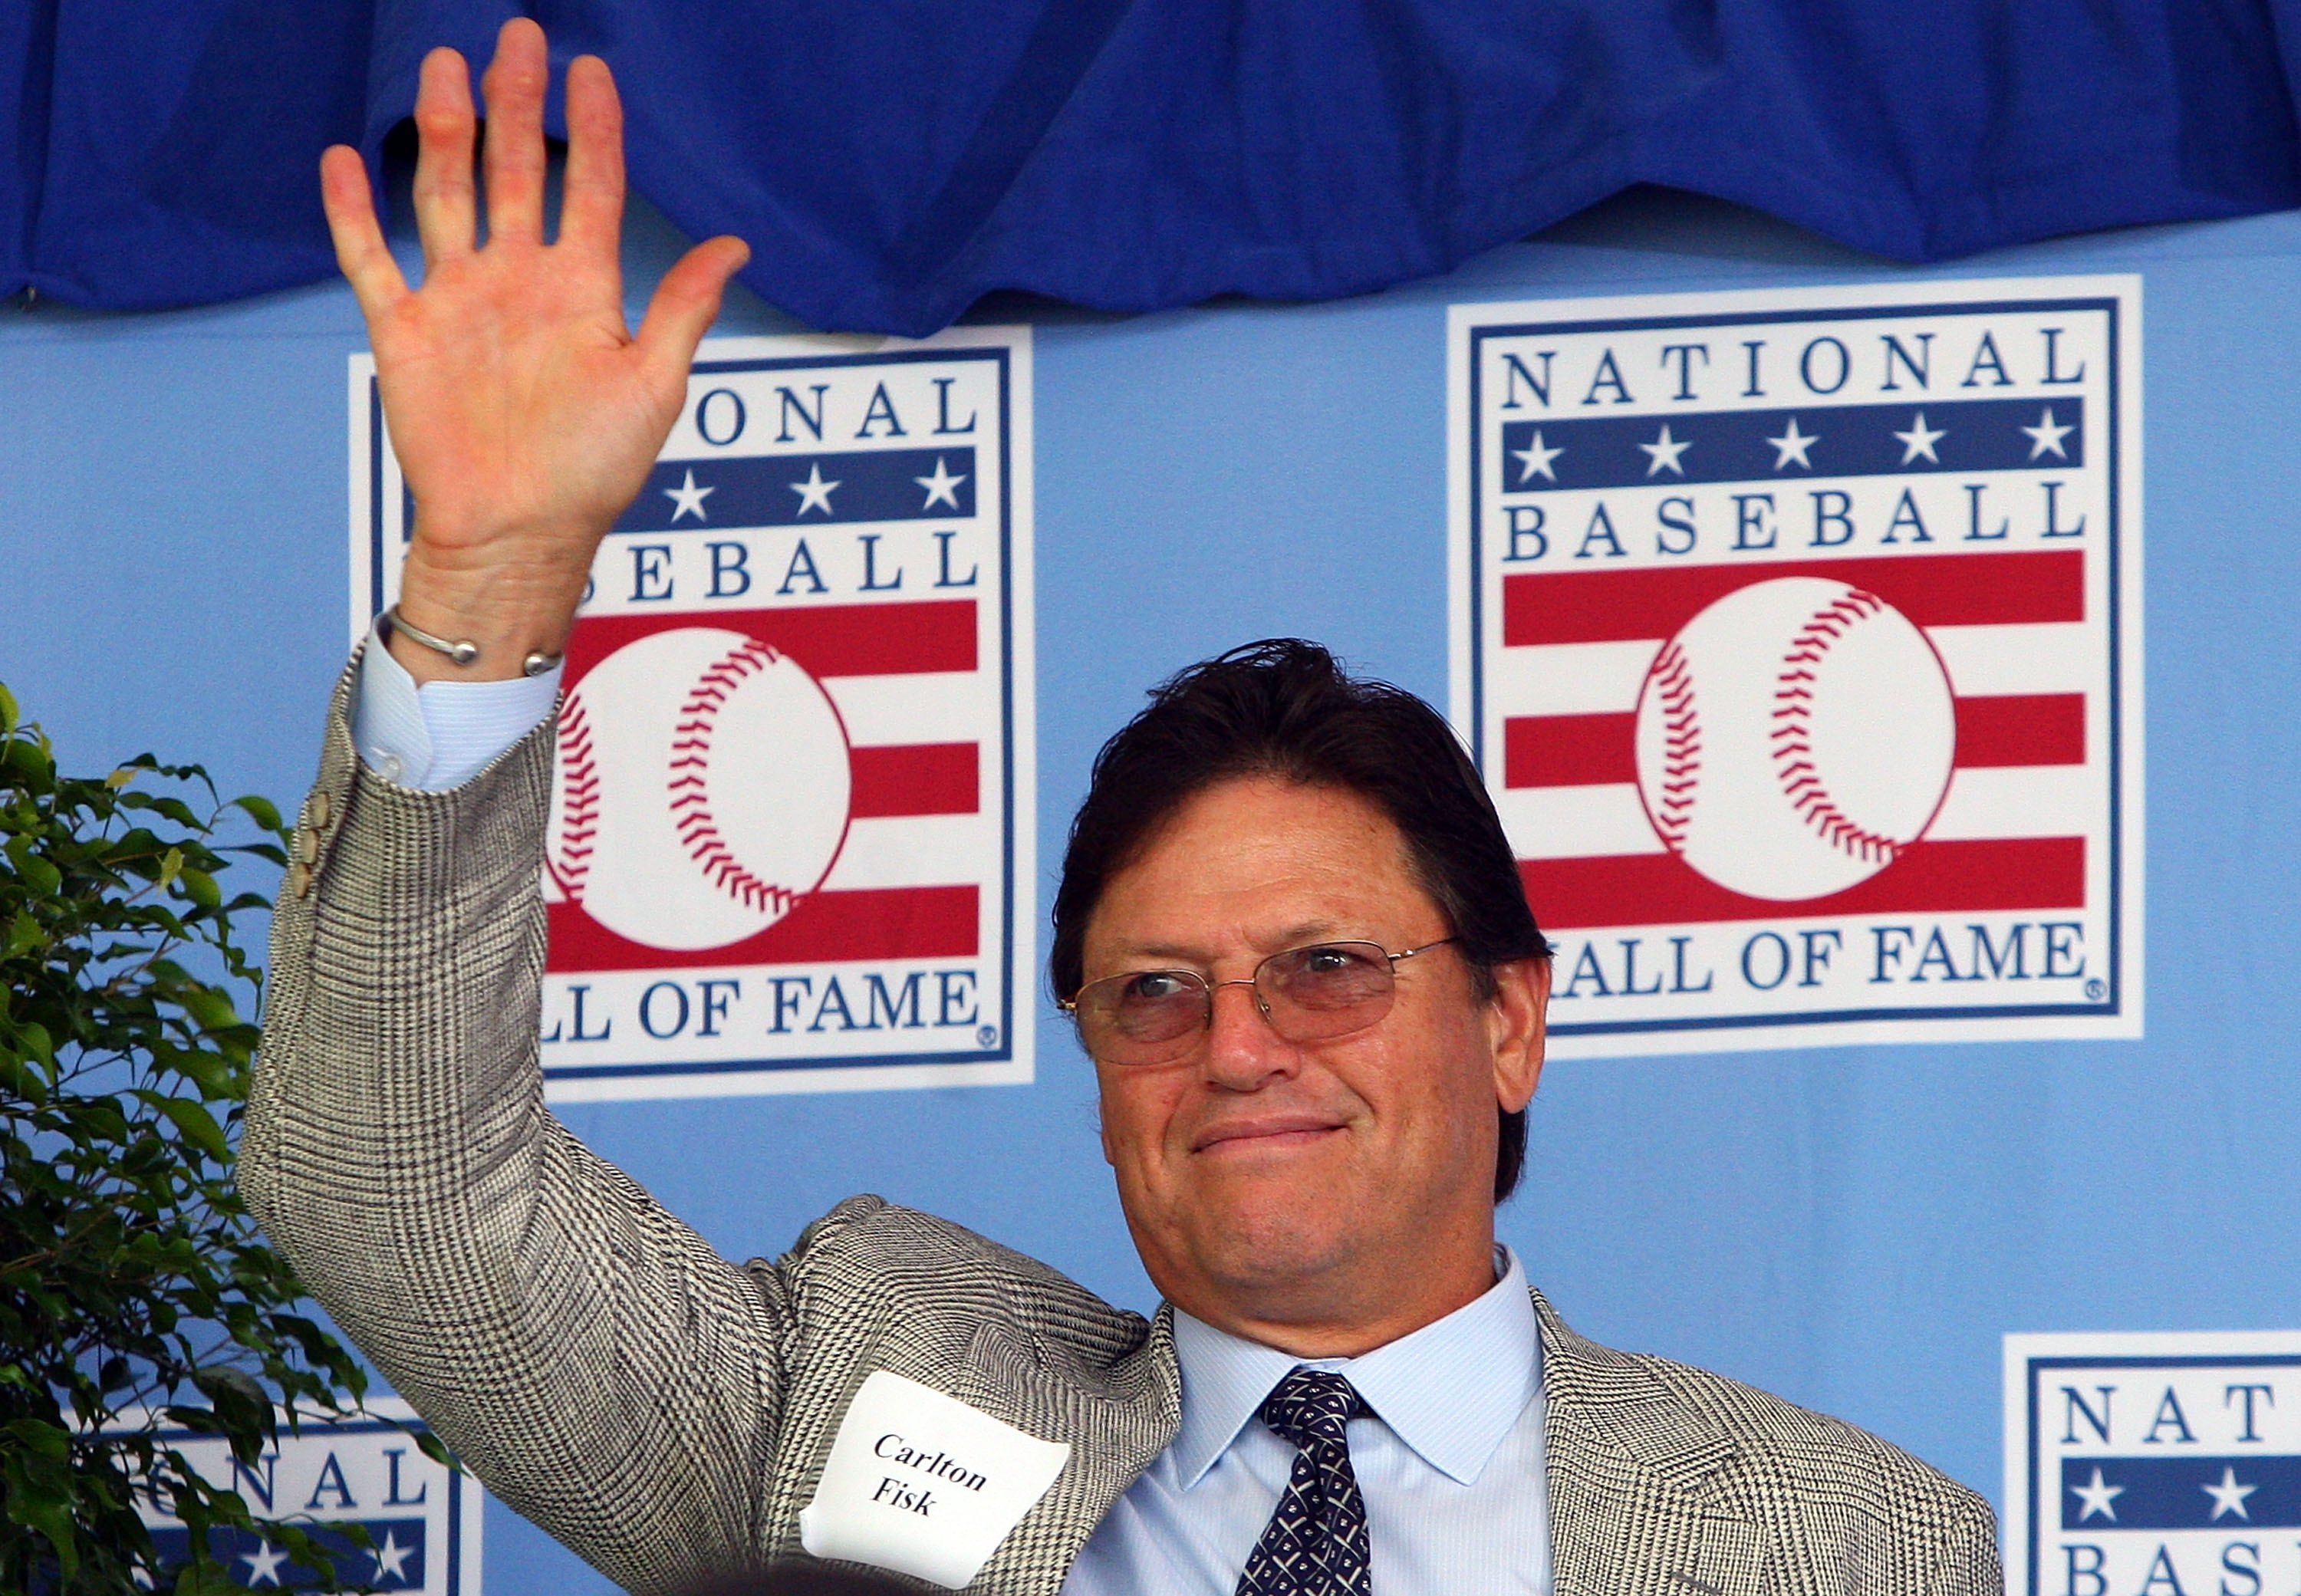 COOPERSTOWN, NY - JULY 26:  Hall of Famer Carlton Fisk waves to the crowd as he is introduced at Clark Sports Center during the 2009  Baseball Hall of Fame induction ceremony on July 26, 2009 in Cooperstown, New York.  (Photo by Jim McIsaac/Getty Images)